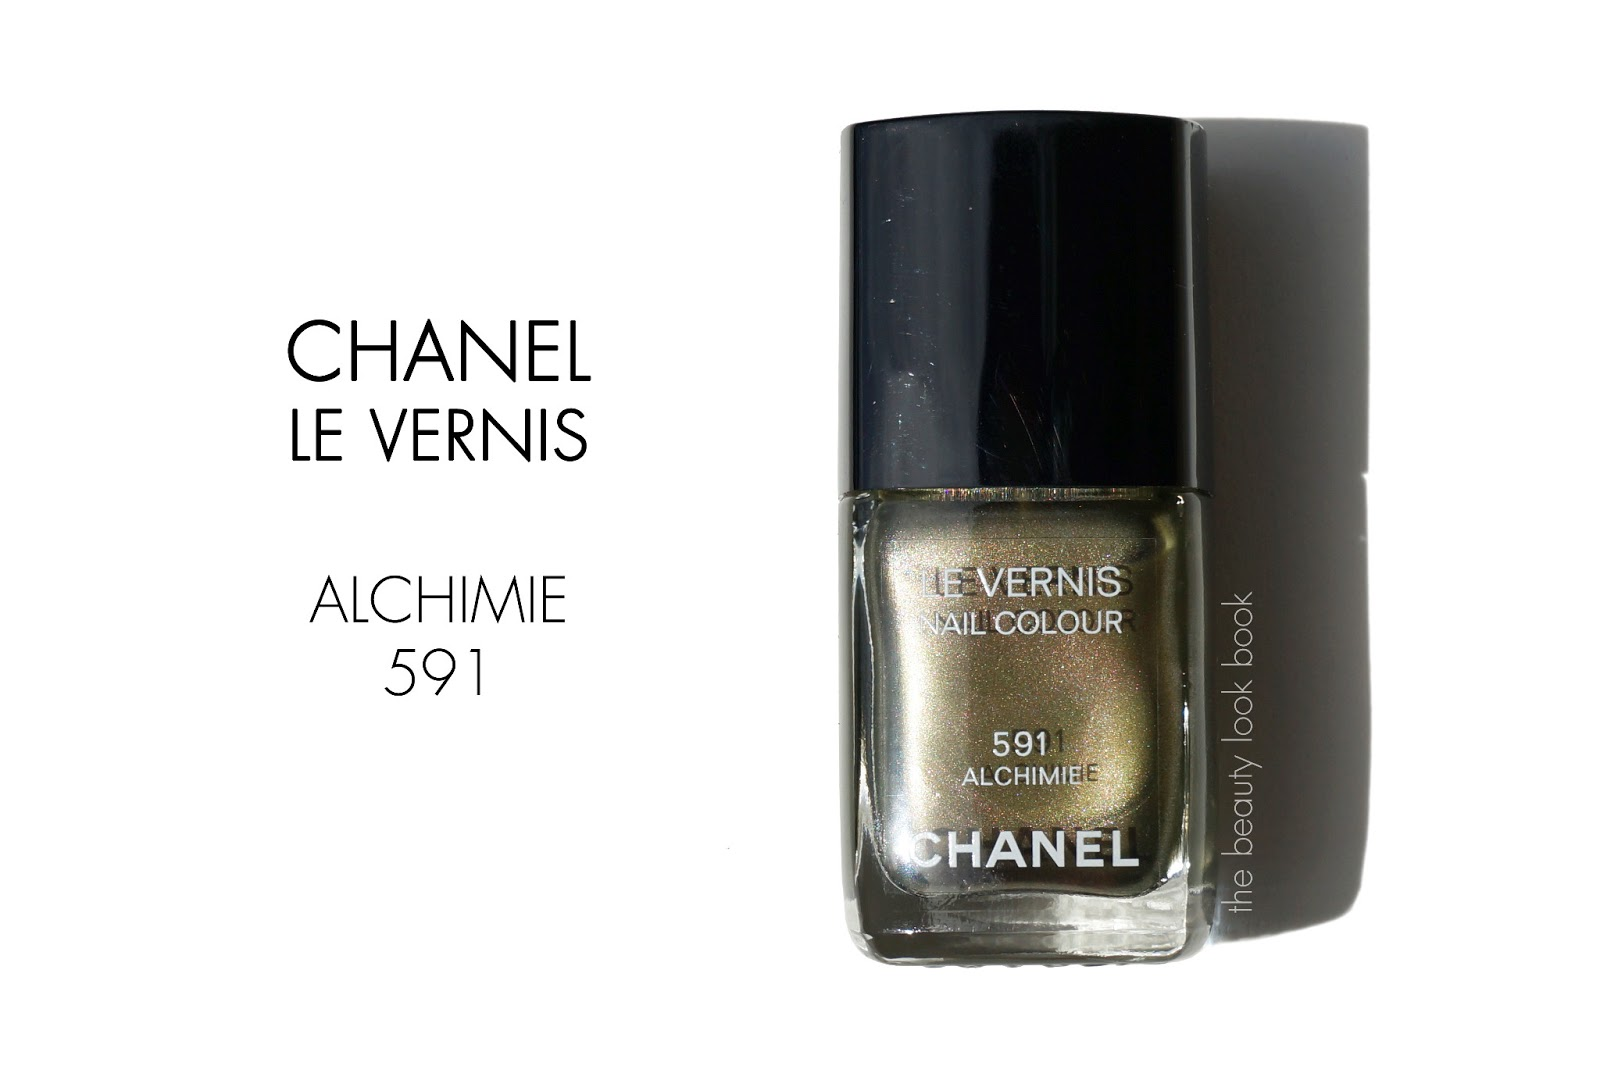 chanel alchimie 591 le vernis fall 2013 the beauty look book. Black Bedroom Furniture Sets. Home Design Ideas